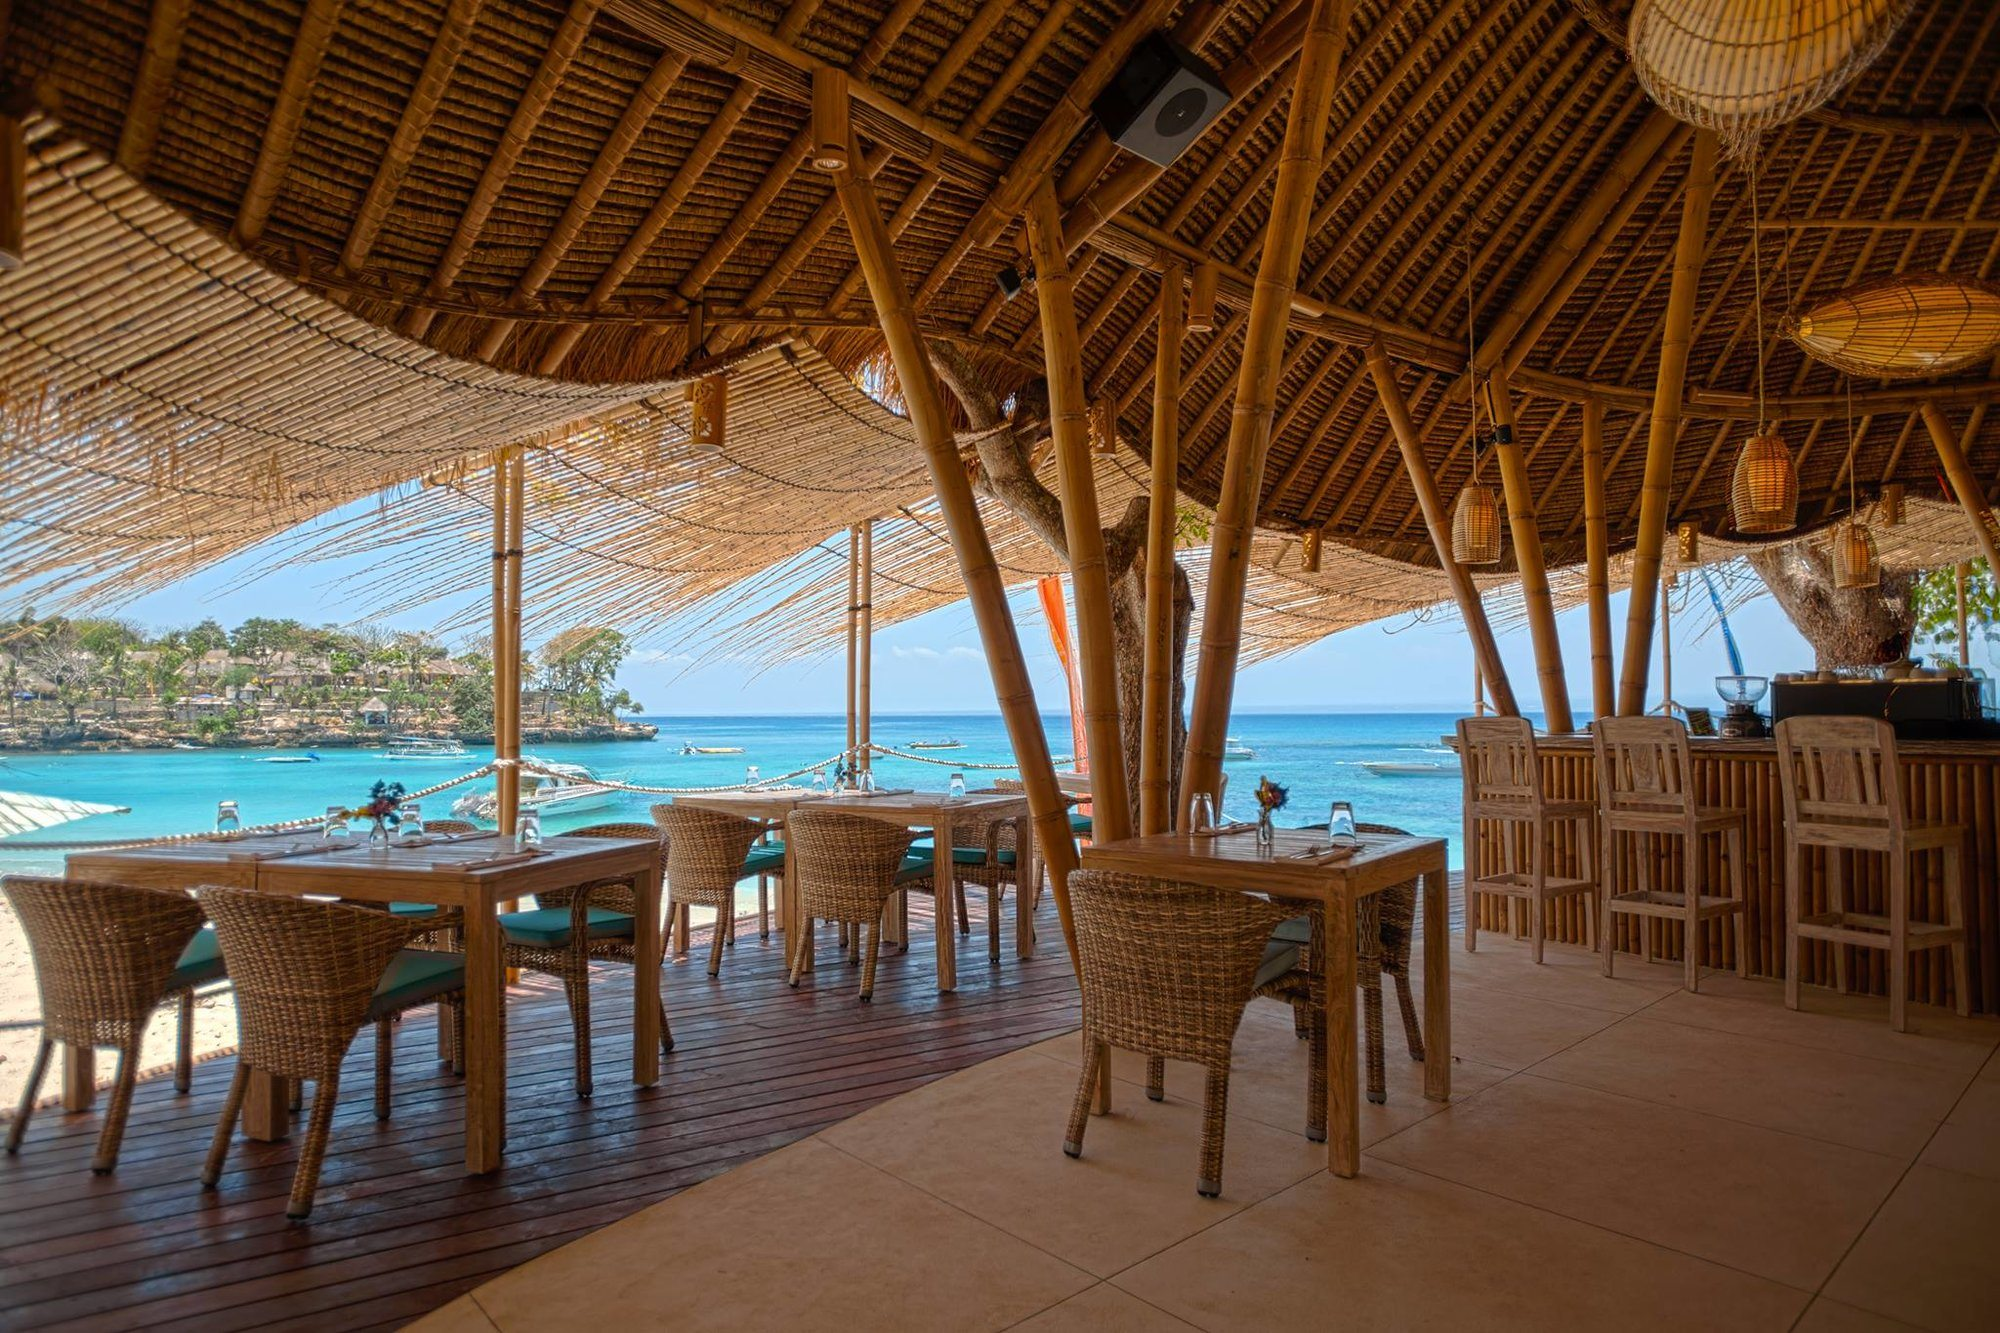 Our Favourite Bars in Nusa Lembongan